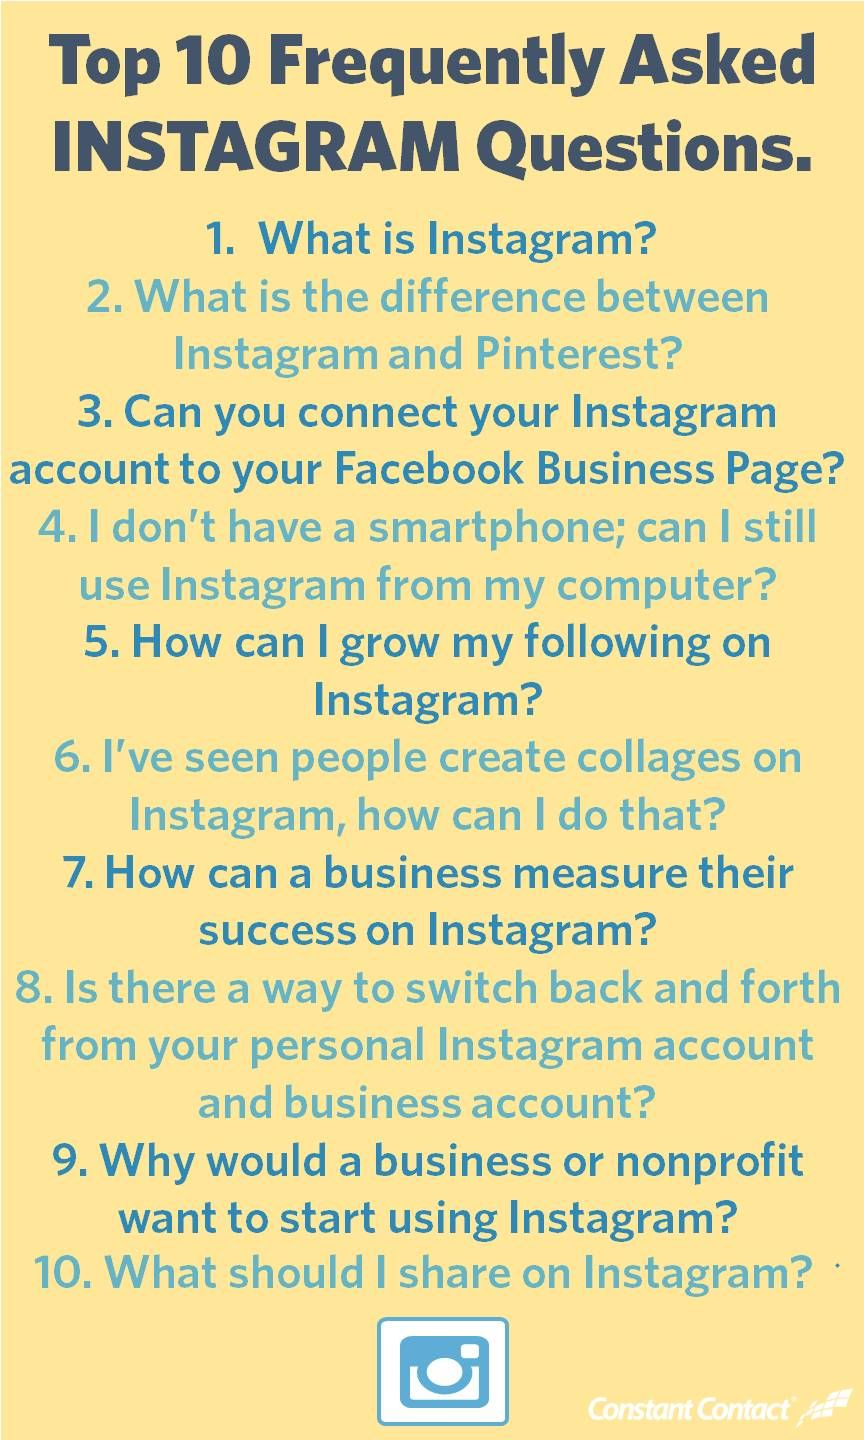 Did we answer your Instagram question? For more tips